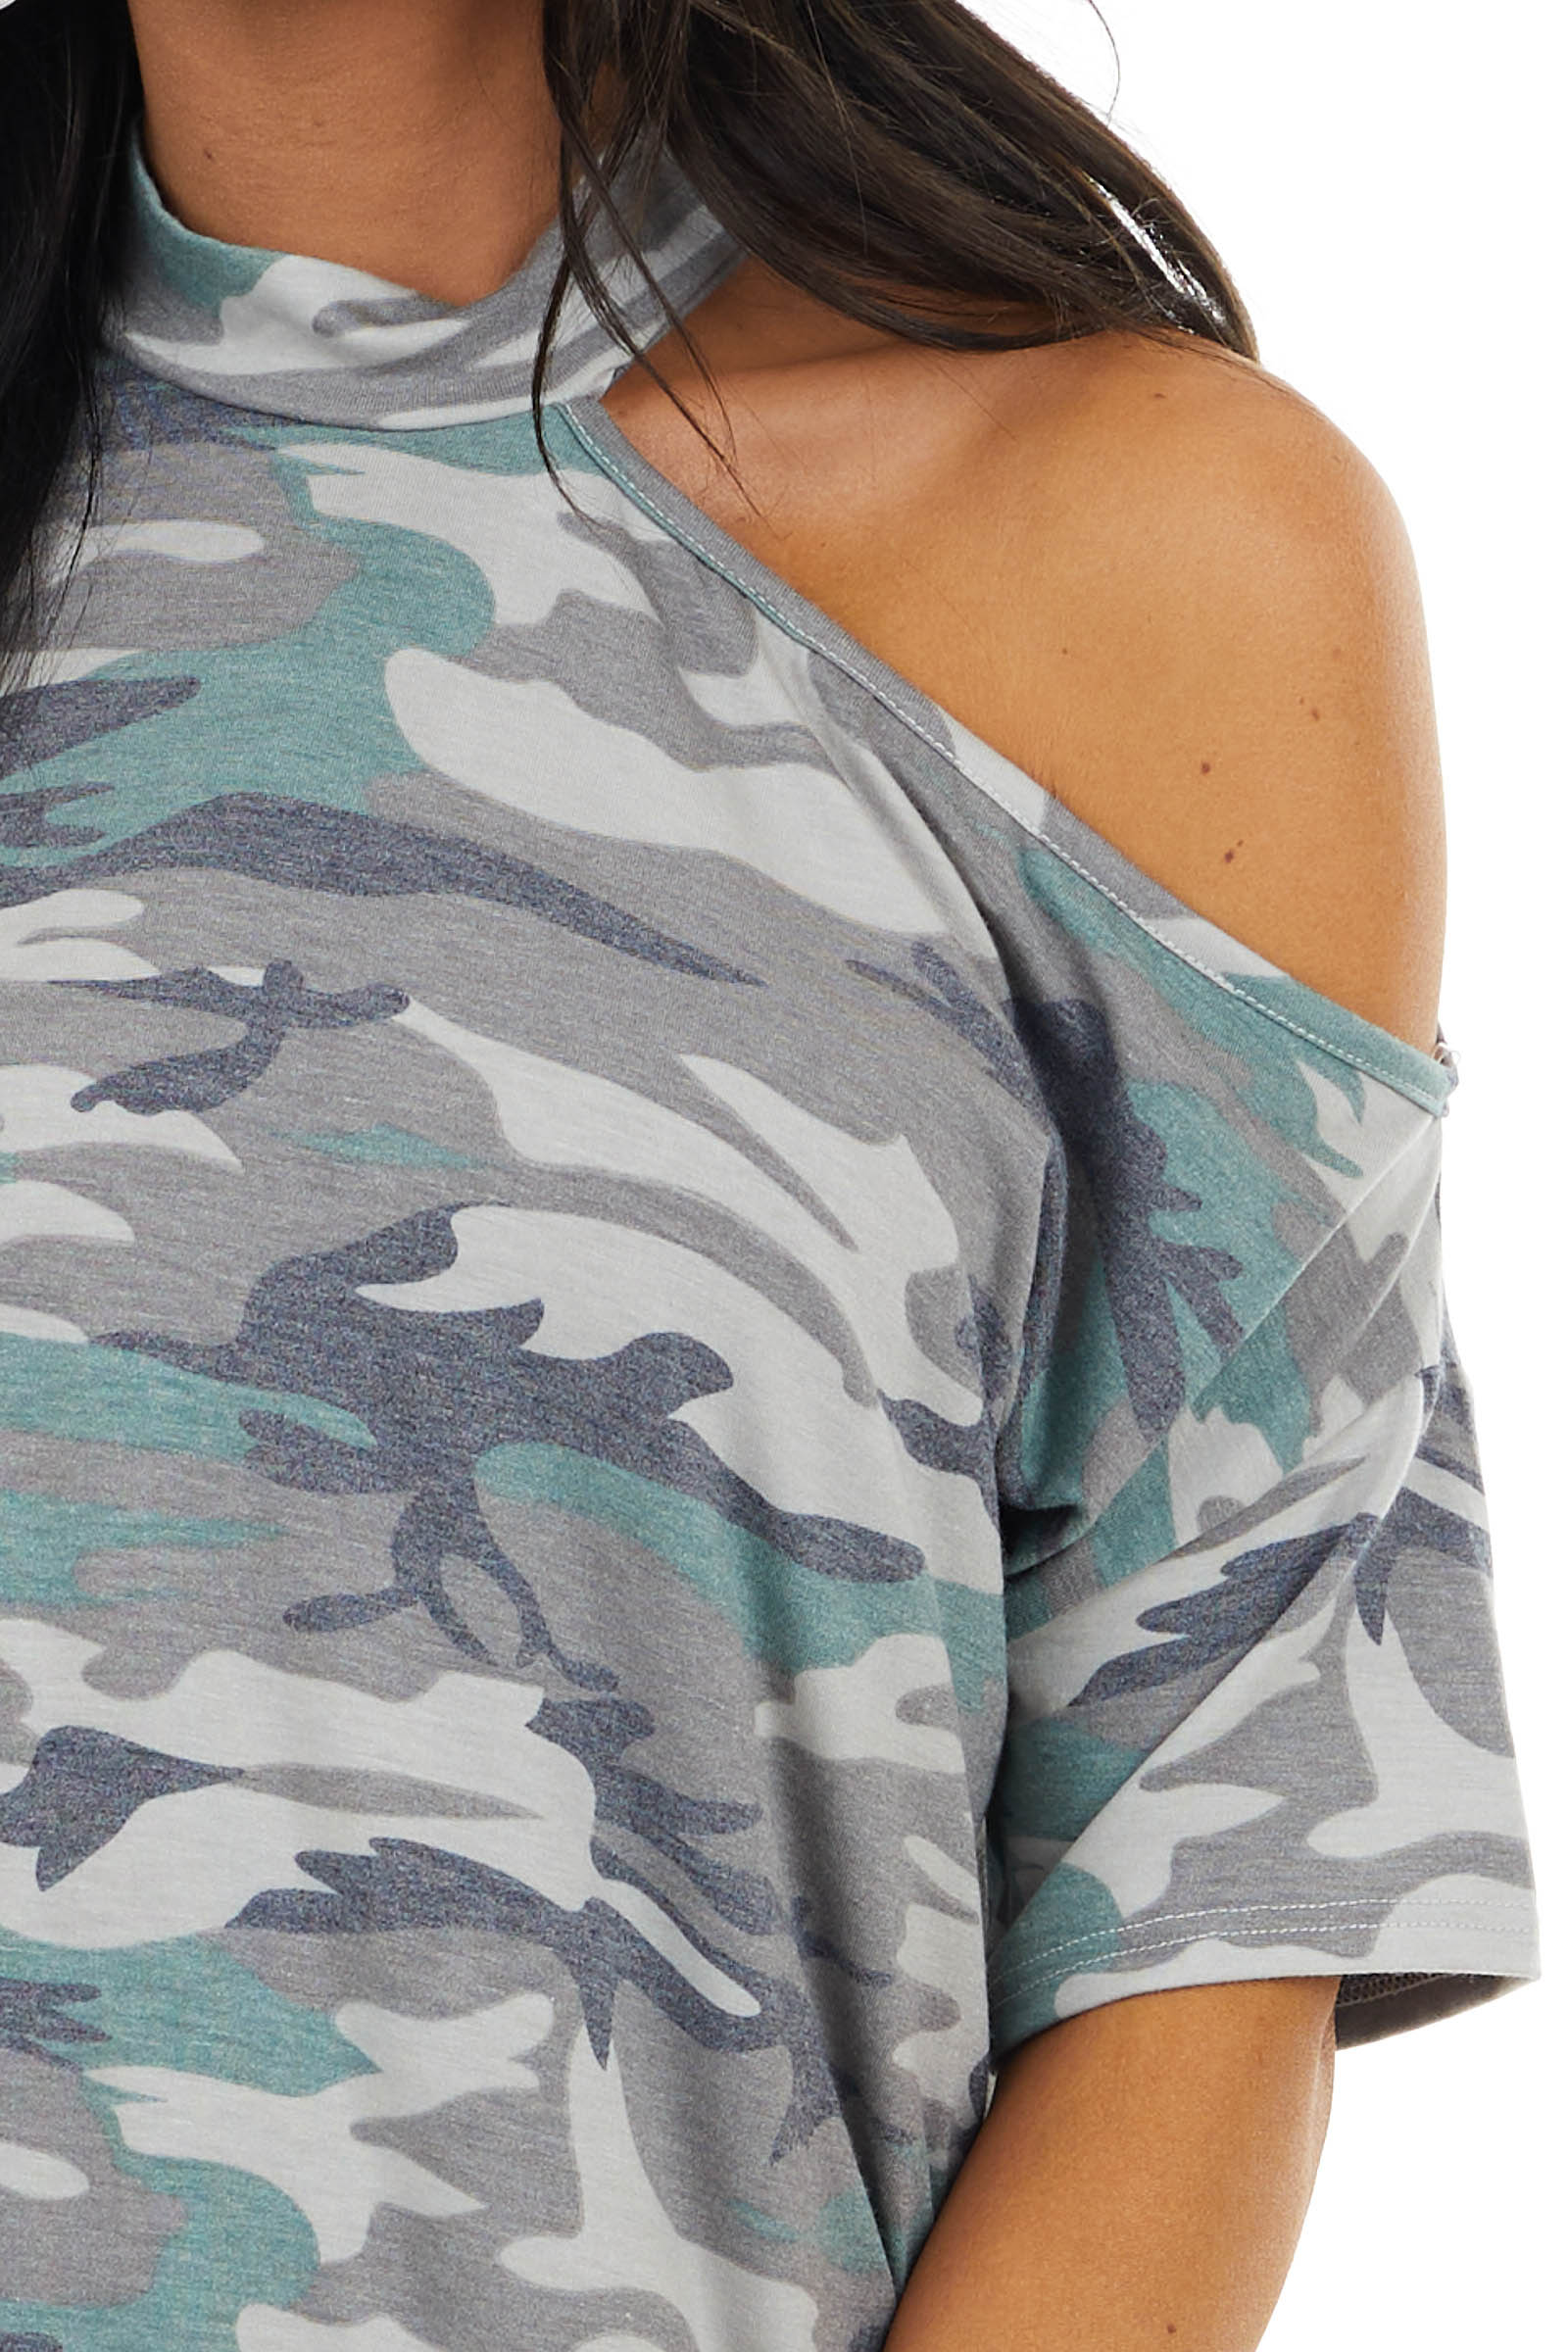 Ash Grey Camo Print One Cold Shoulder Short Sleeve Top